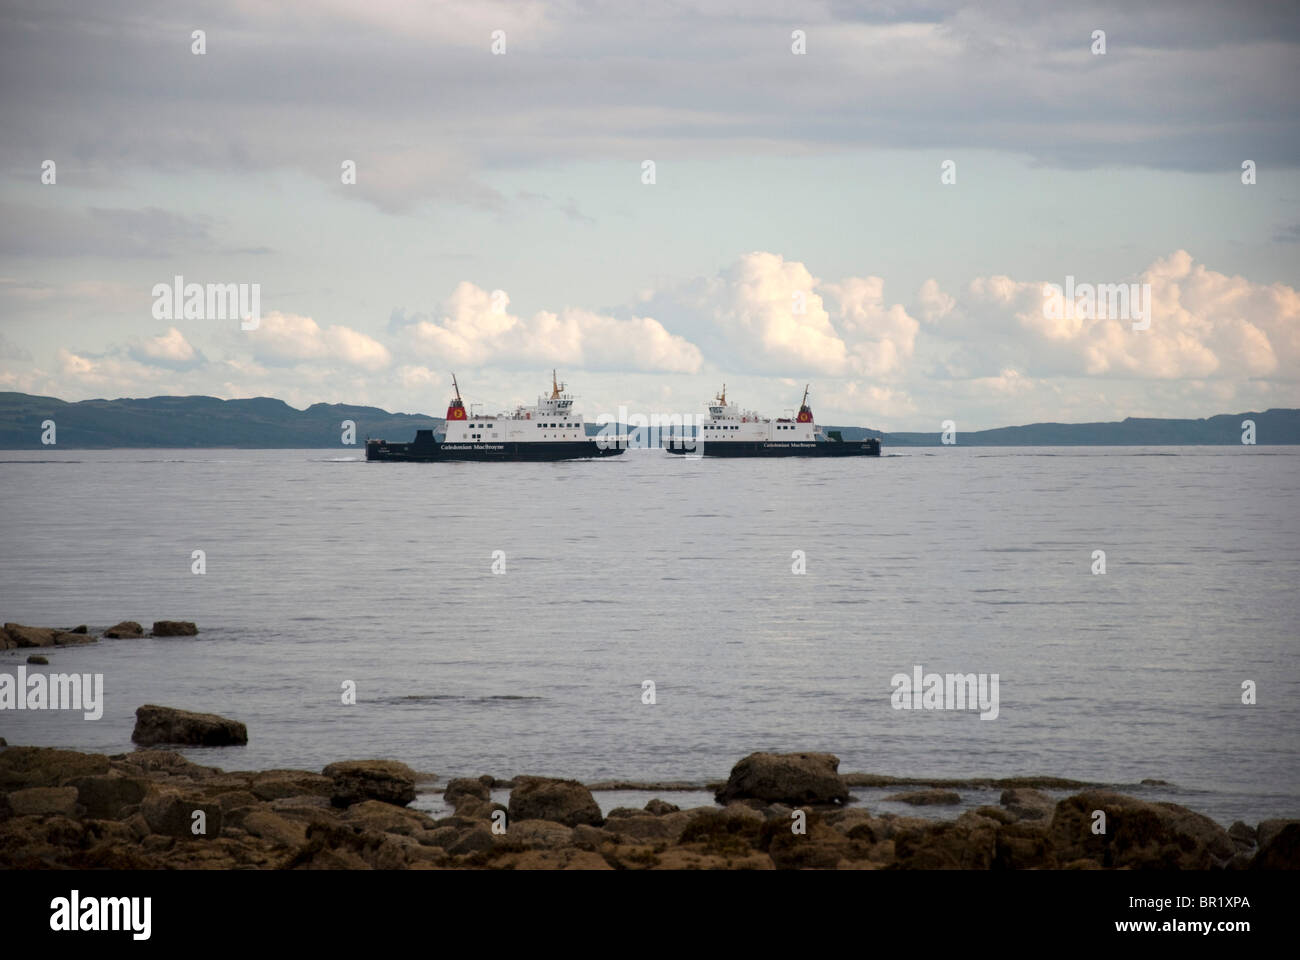 M. V. Argyle & Bute Passing in the Clyde Estuary between Rothesay & Wemyss Bay Scotland - Stock Image